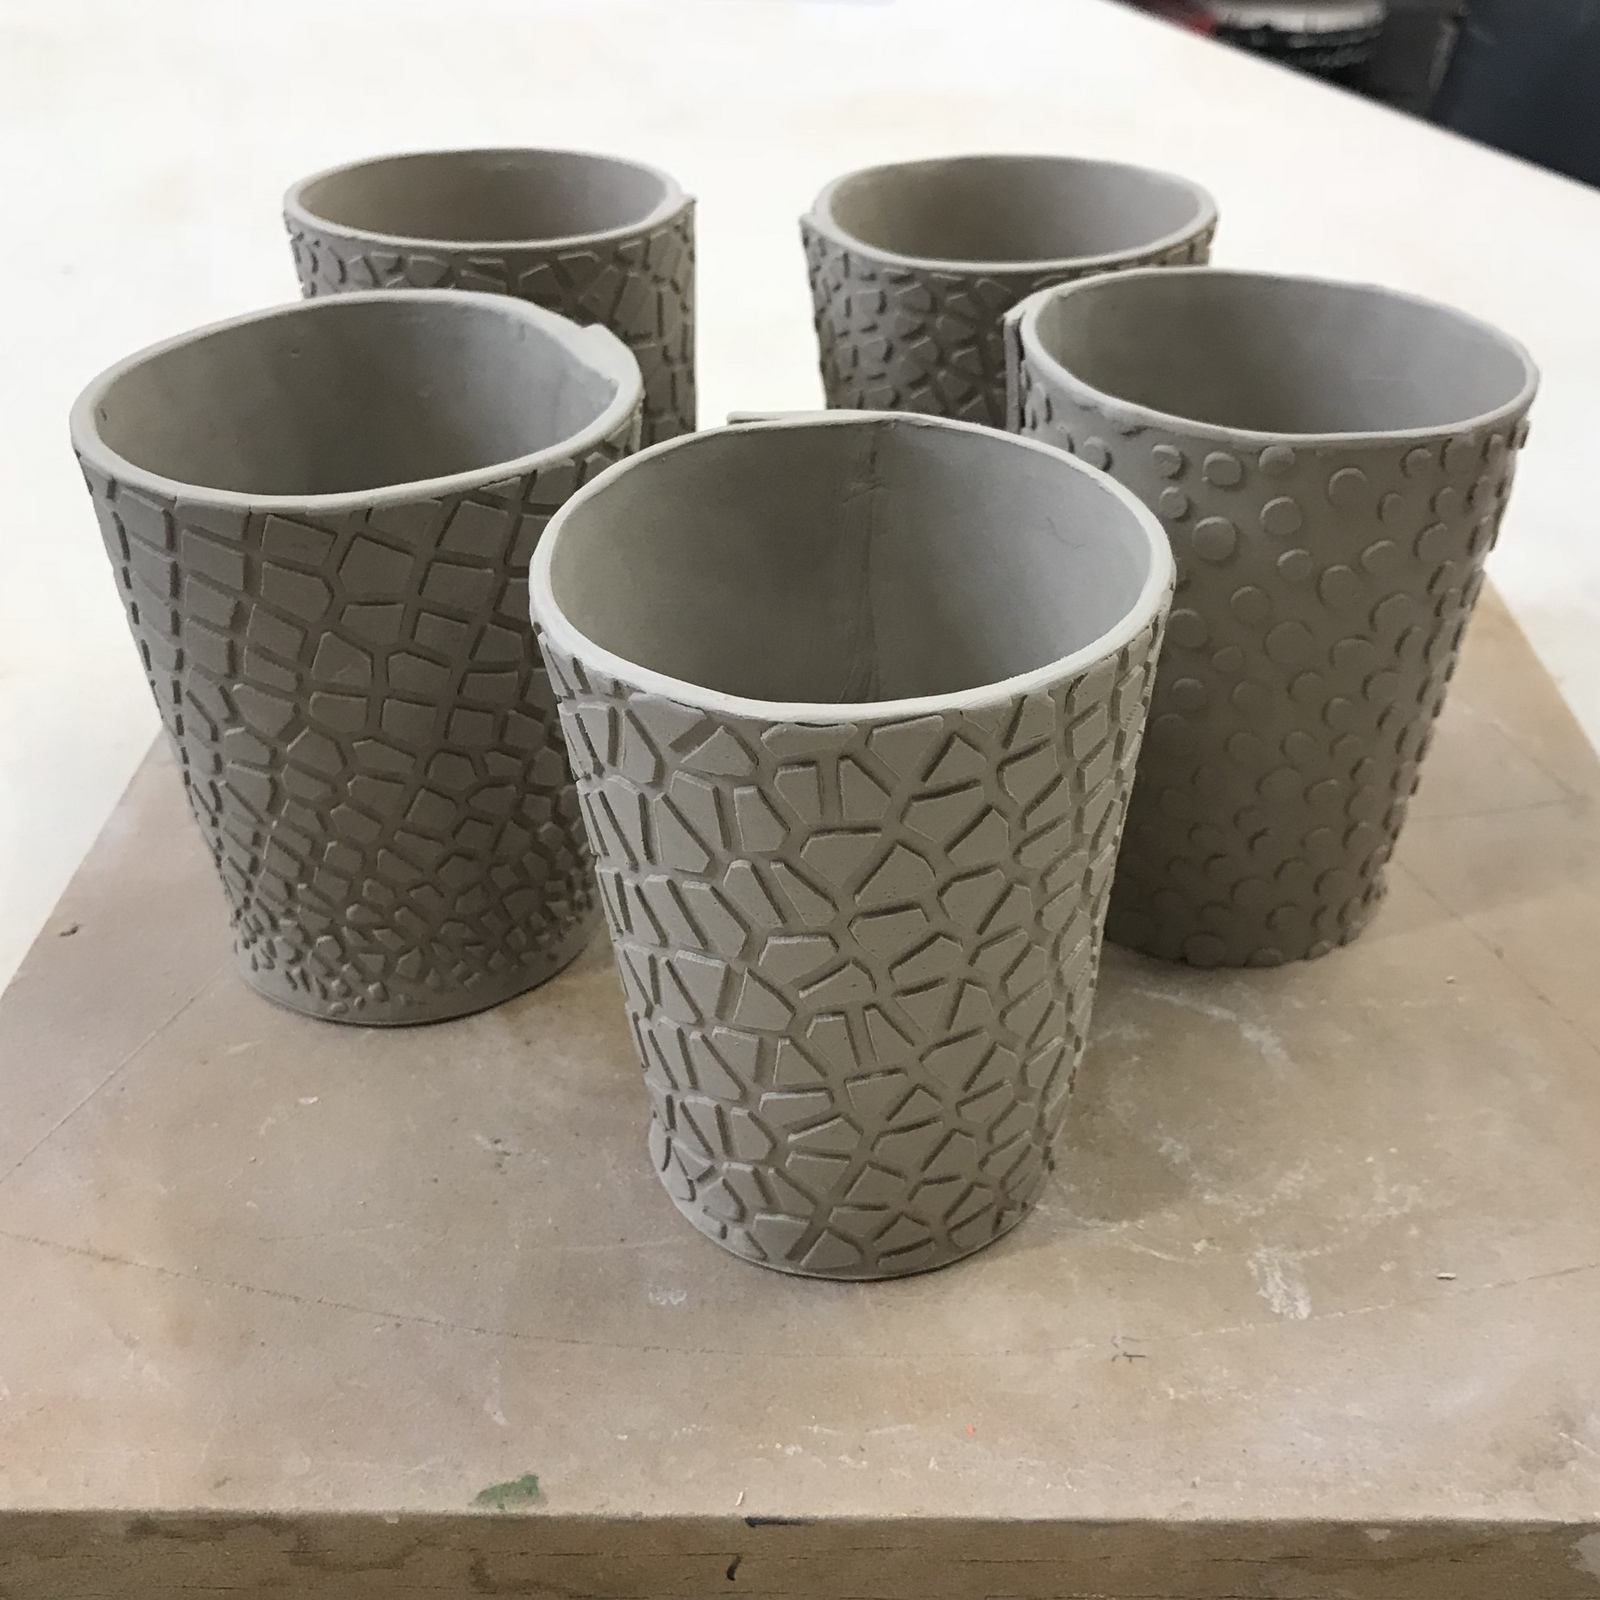 Cups in wet clay.